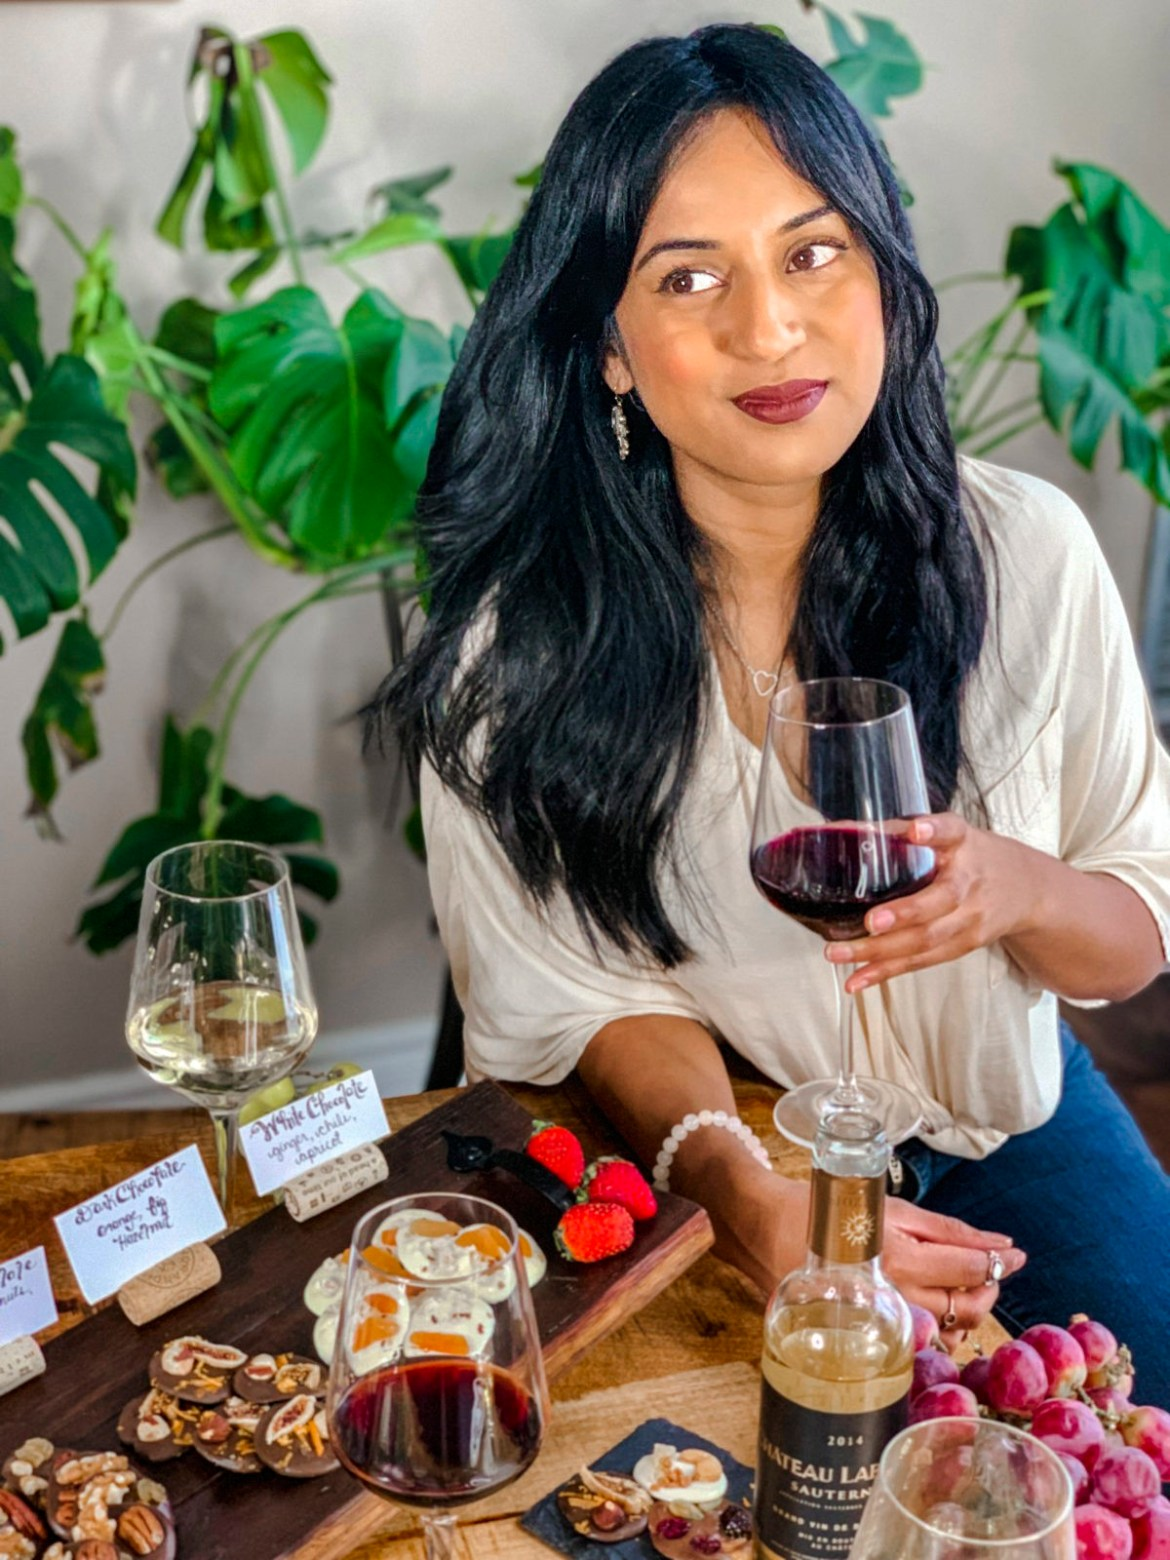 Host a Wine and Chocolate Tasting